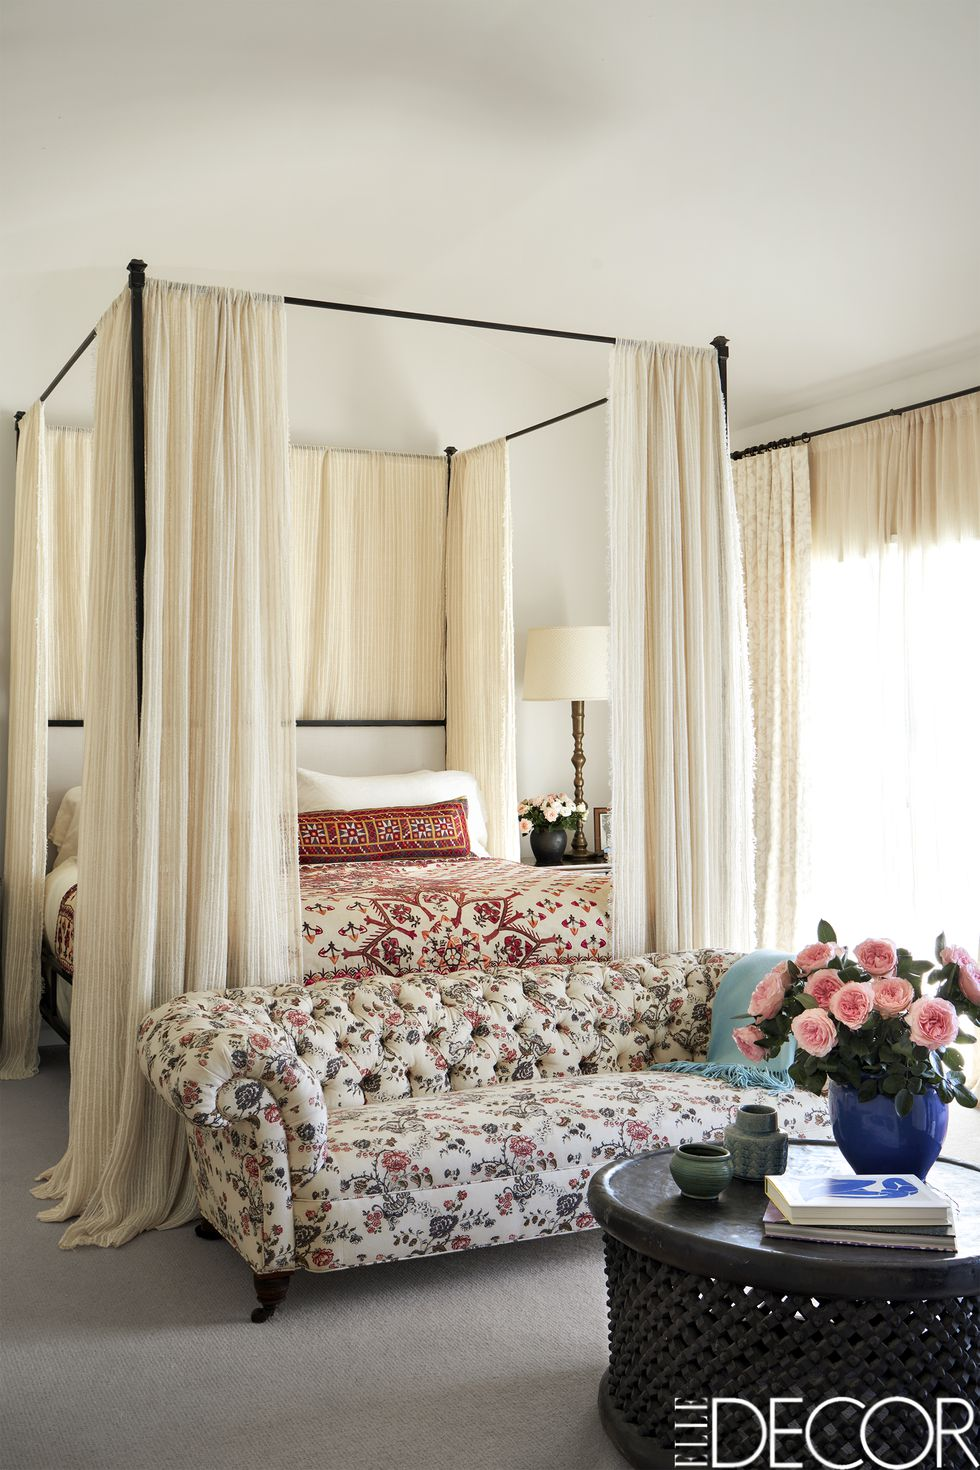 Elle Decor Bed.jpg